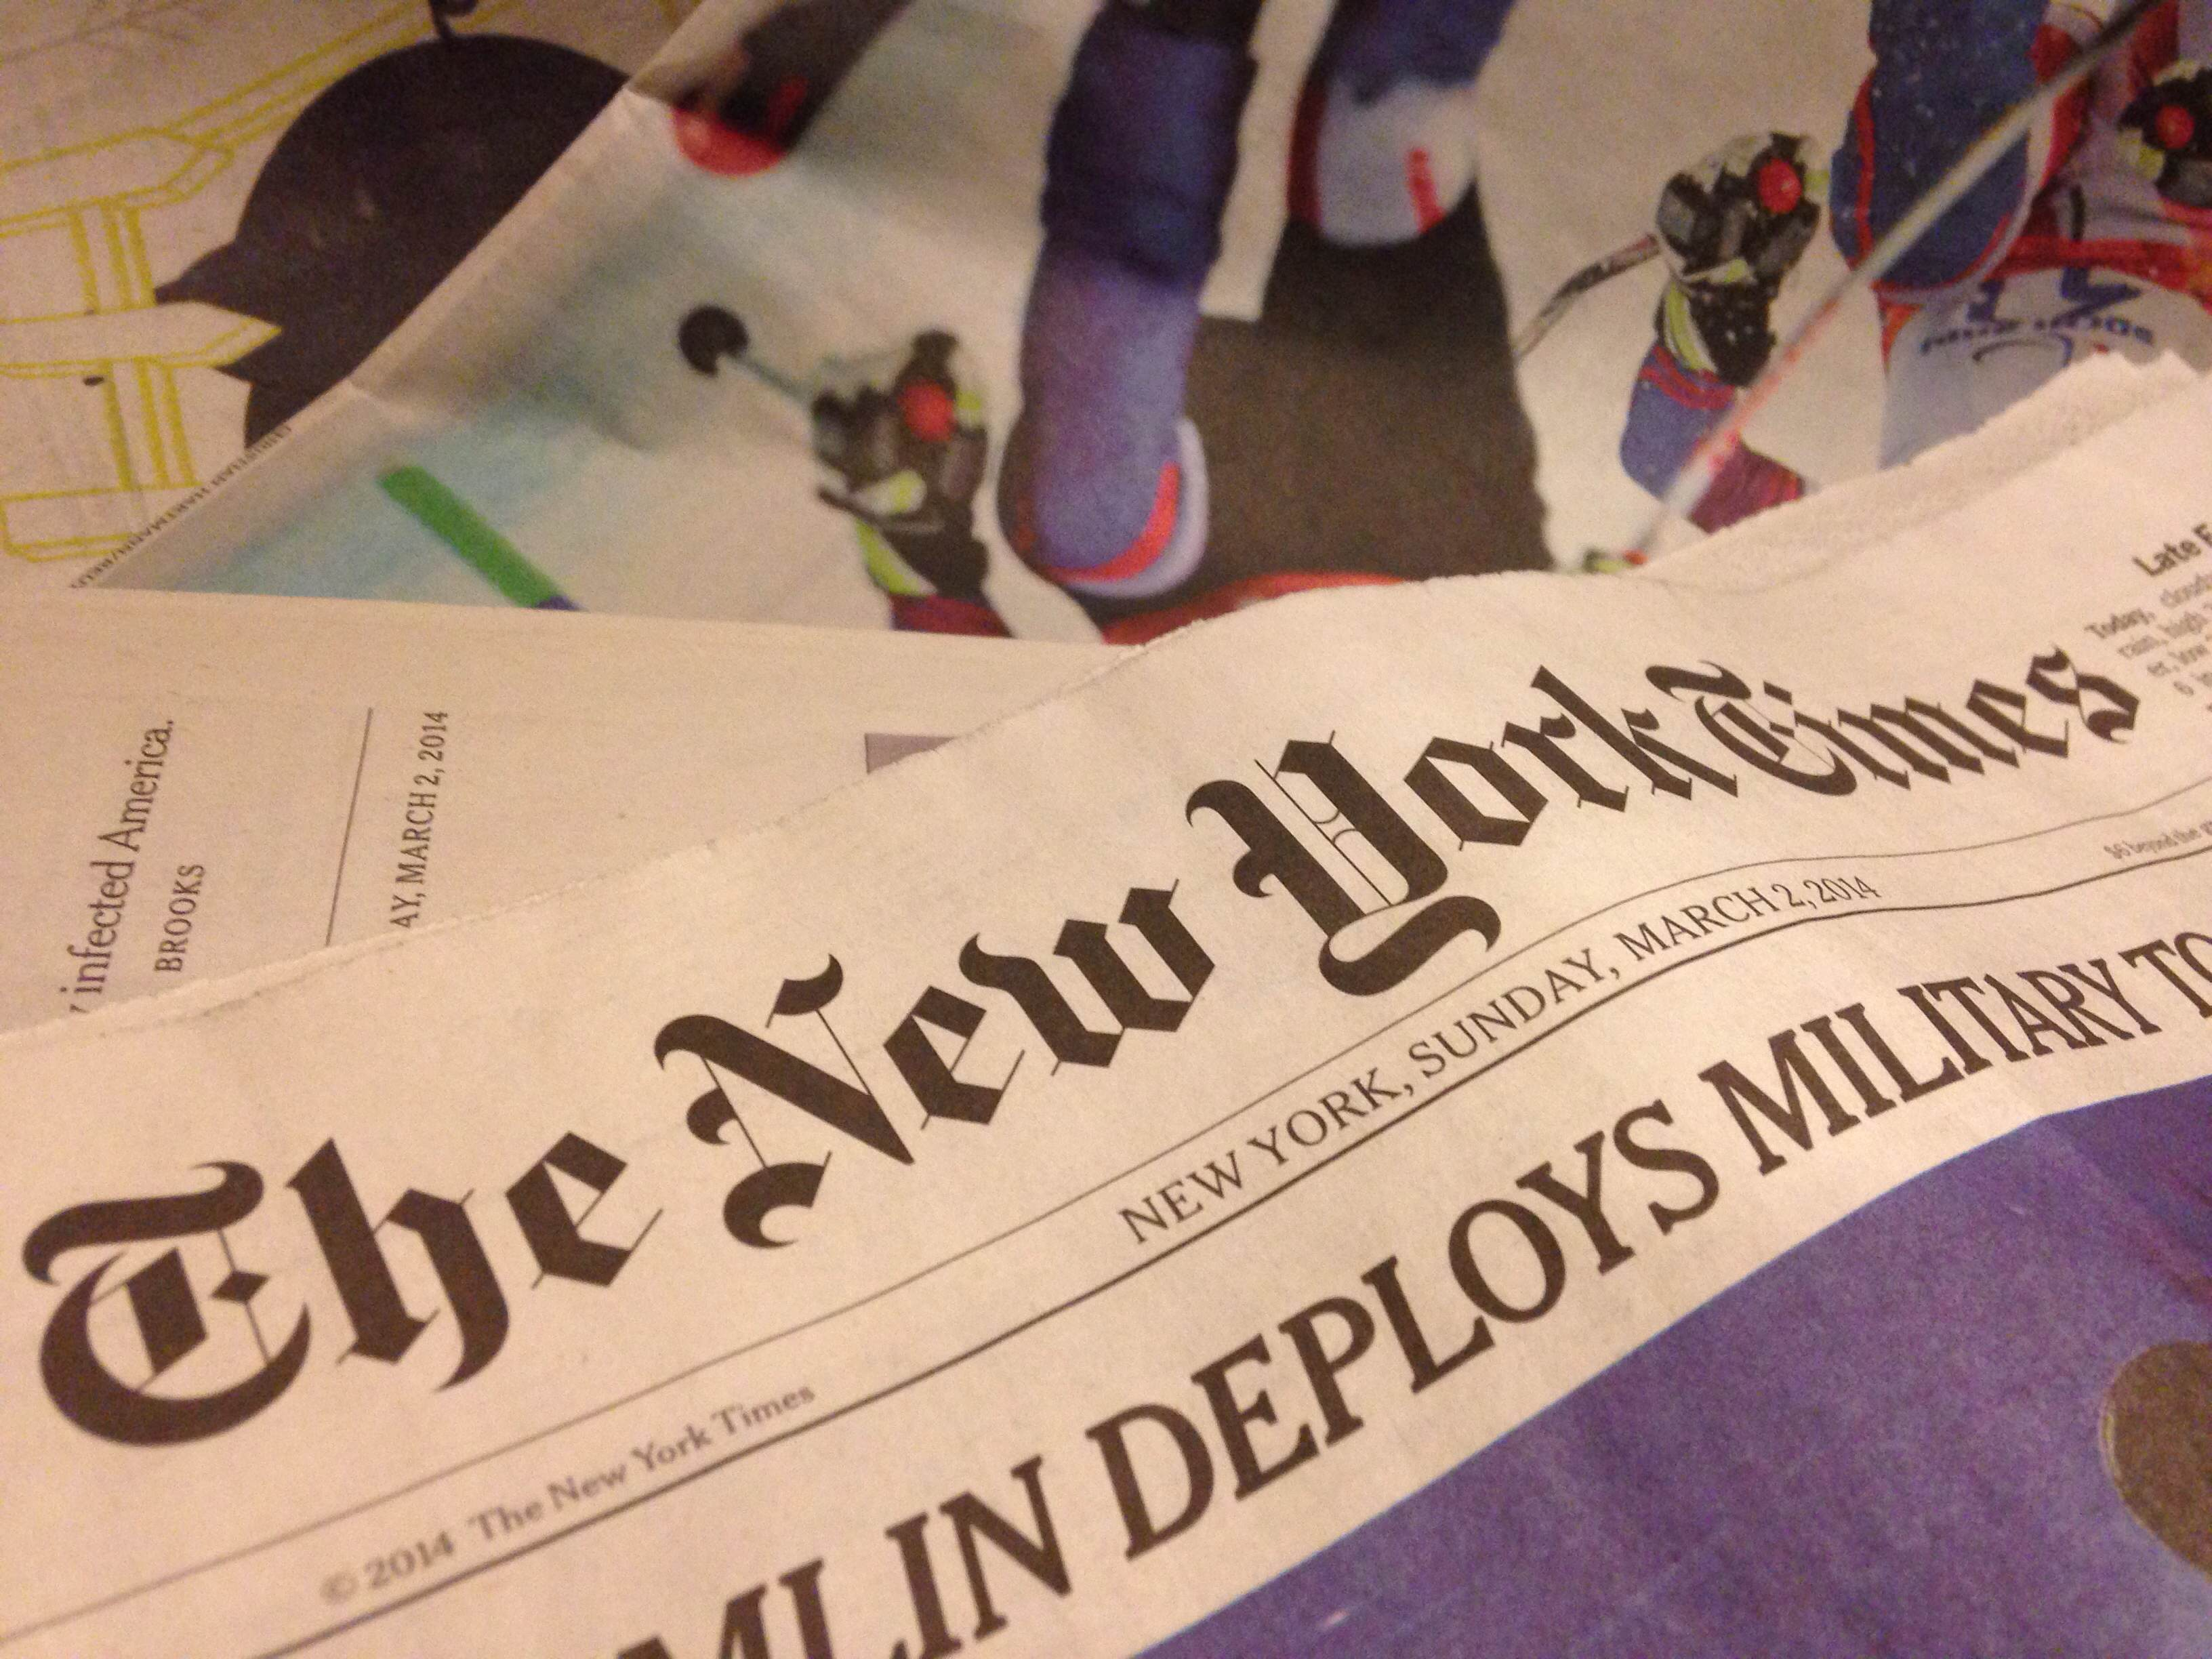 New York Times to pay academic interns minimum wage